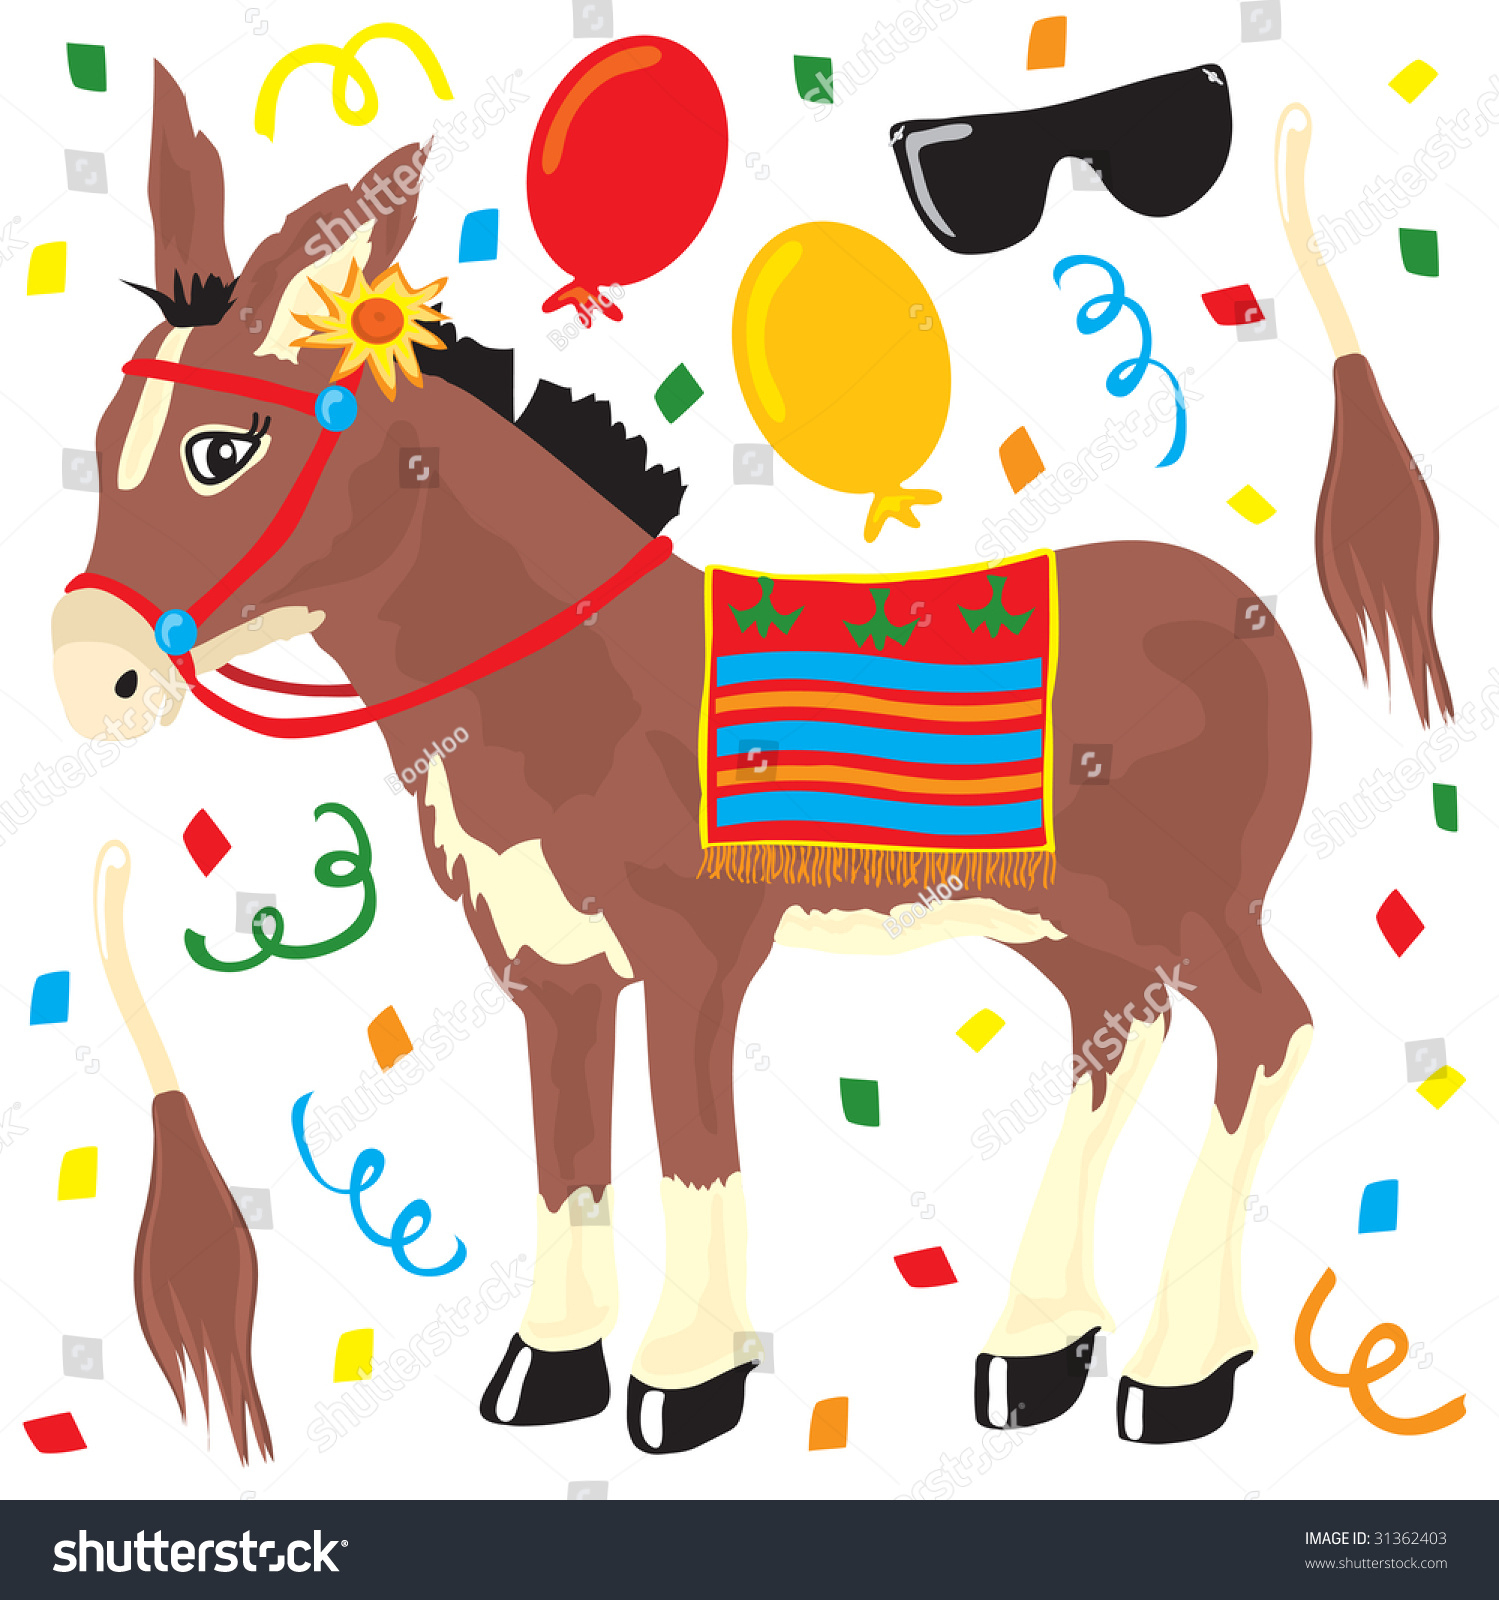 Pin Tail On Donkey Party Elements Stock Vector (Royalty Free - Pin The Tail On The Donkey Printable Free